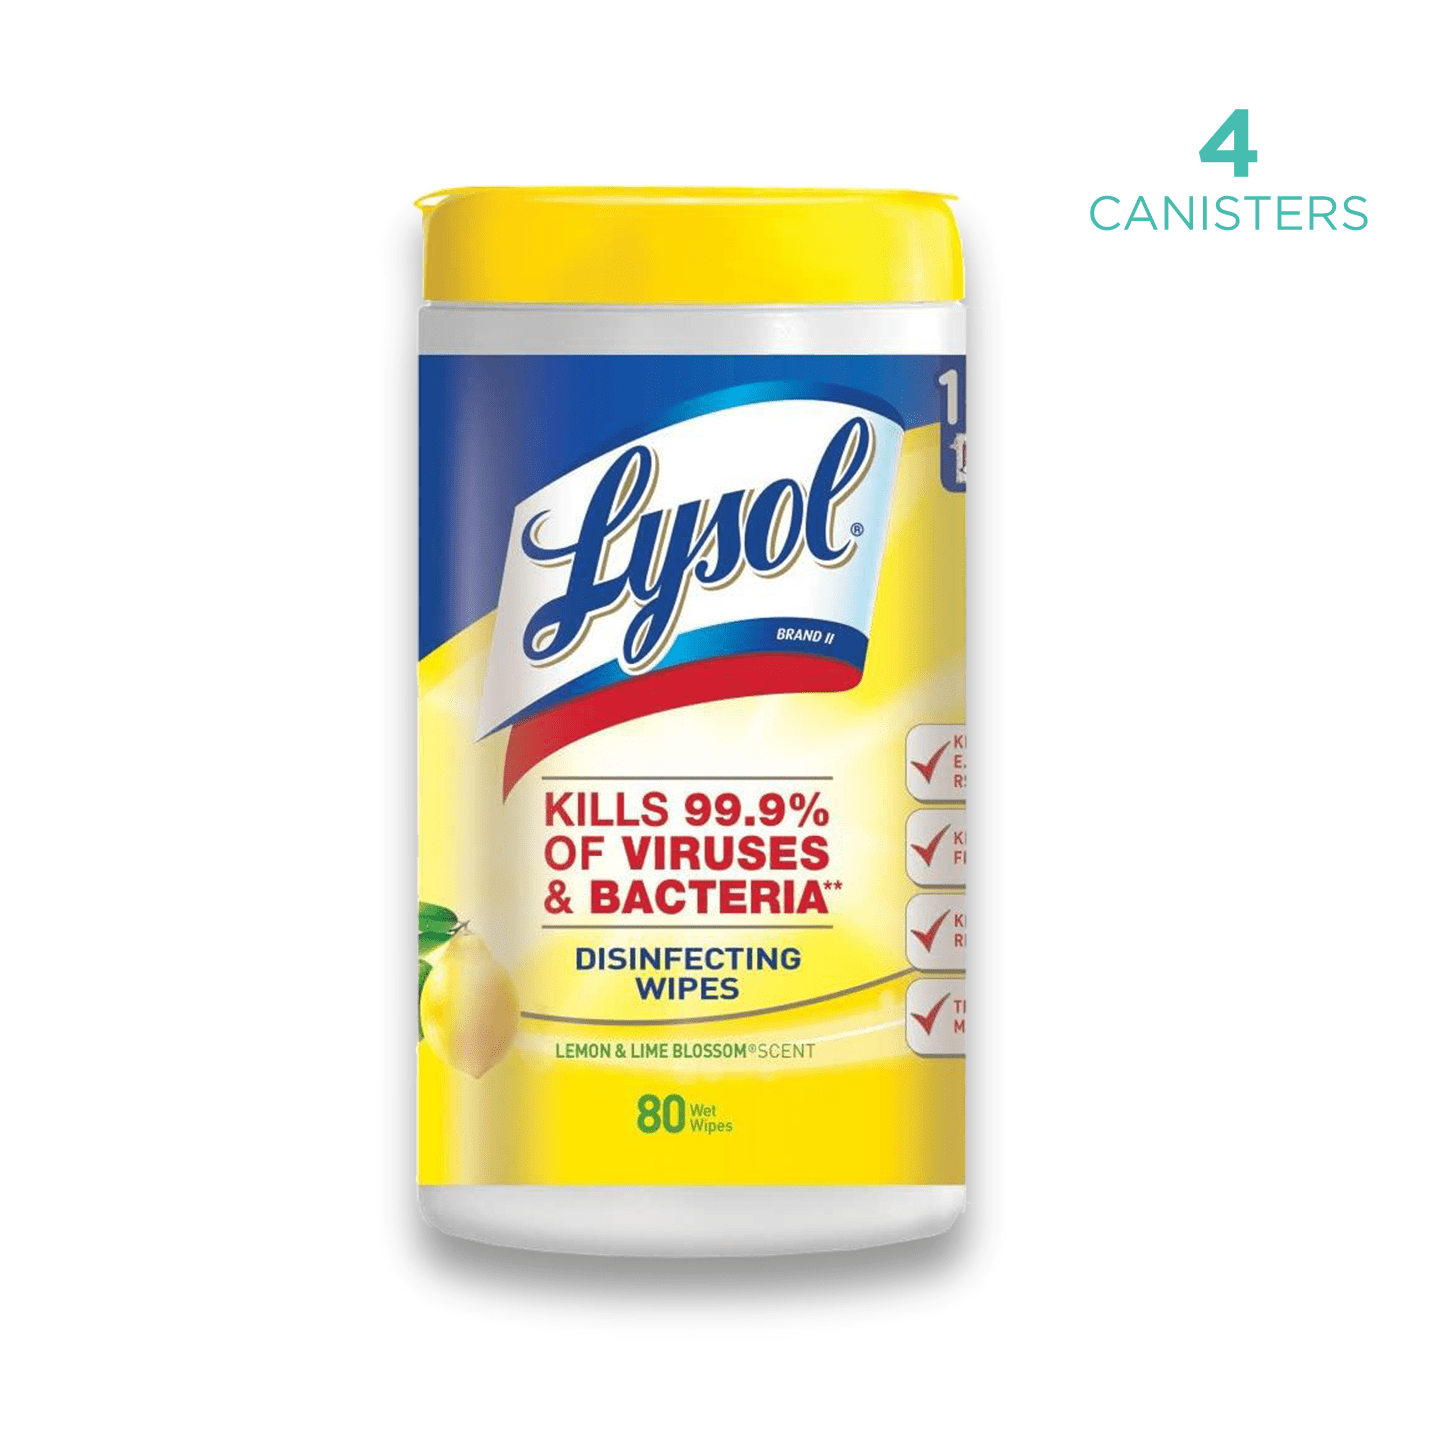 Lysol® Disinfecting Wipes - 3 canister of 80 wipes - Lemon and Lime - USA Medical Supply - DB Protective